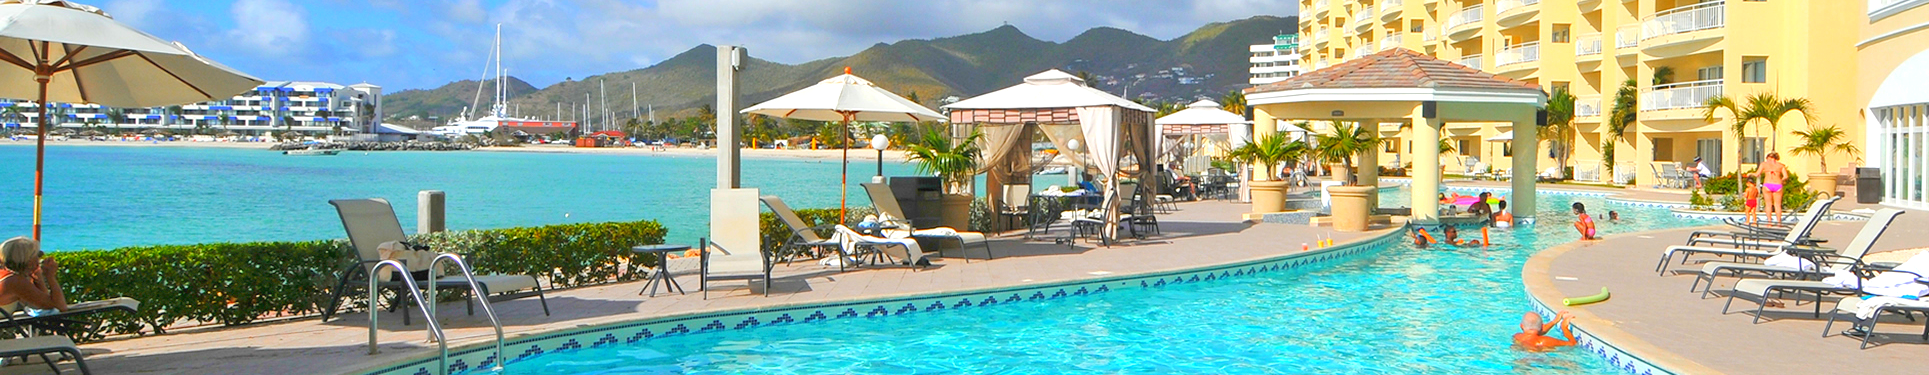 simpson-bay-resort-st-maarten